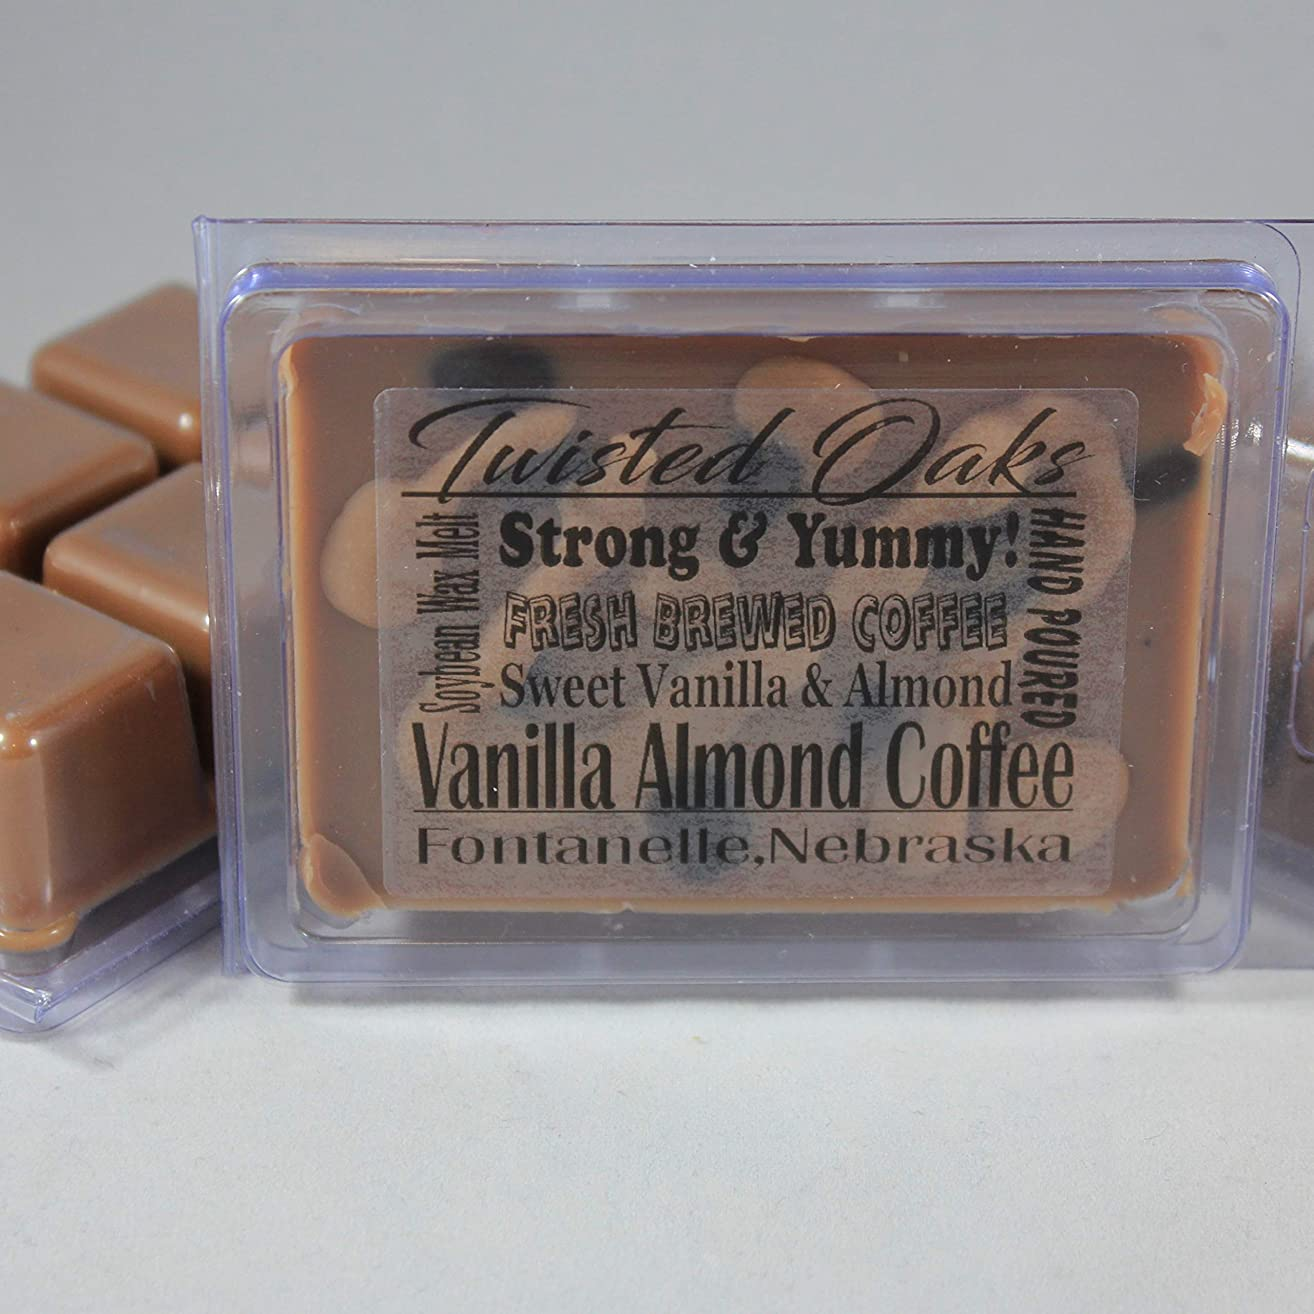 Vanilla Almond Coffee. Sweet Vanilla, Buttery Almonds, and Fresh Brewed Coffee Scent! Soybean Blend Wax Melt. Hand Poured by Twisted Oaks Wax Works, Nebraska.